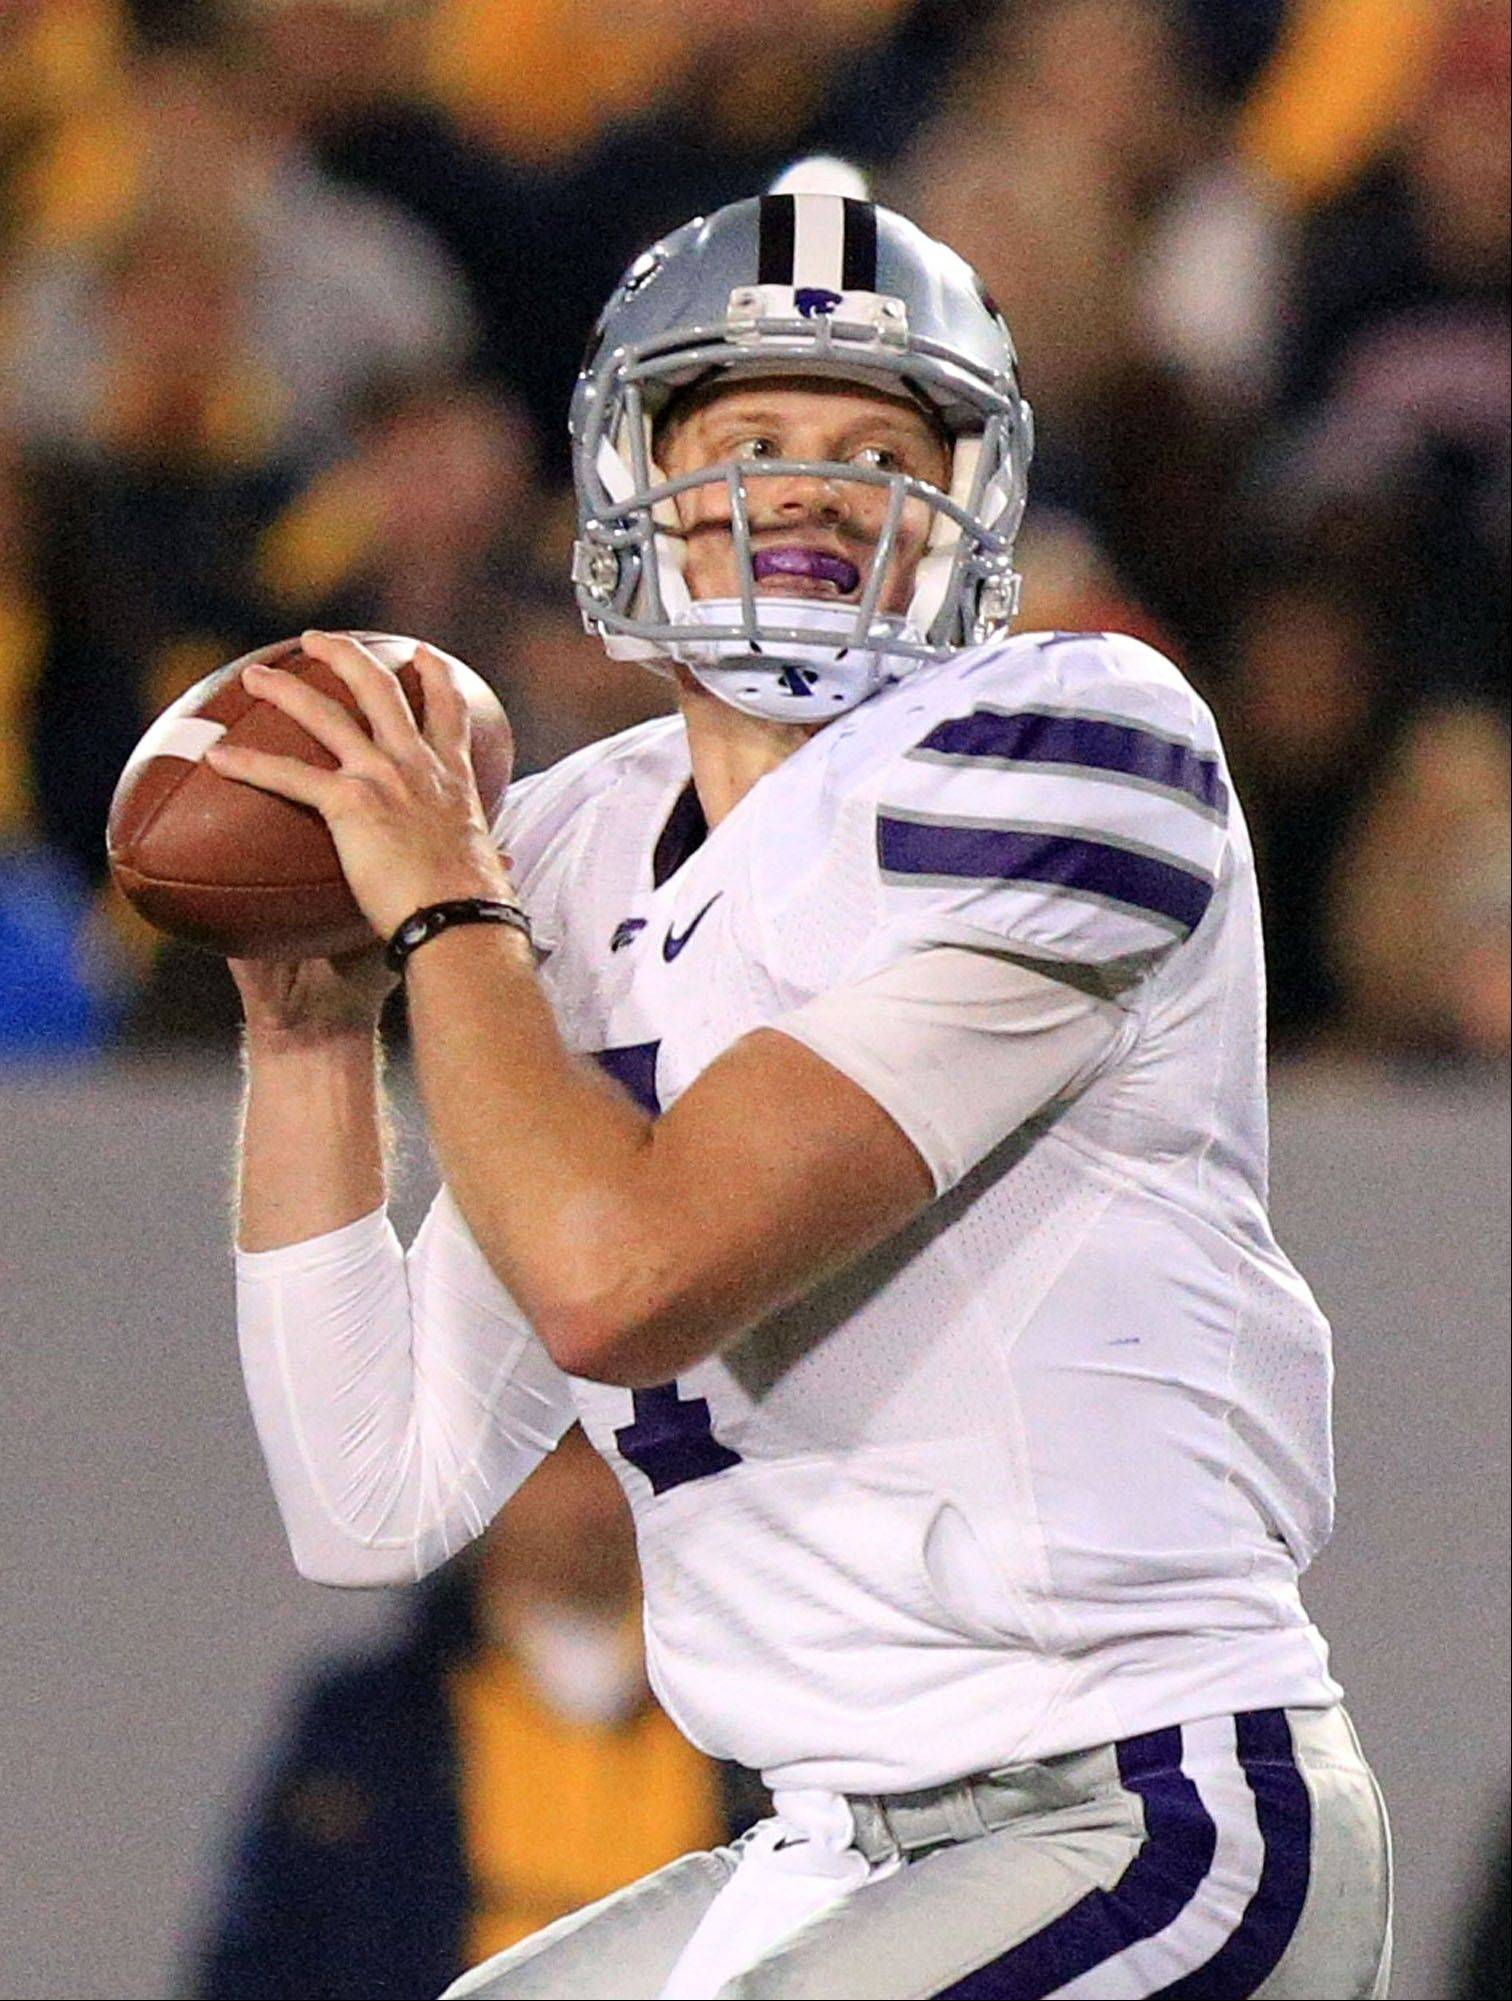 Kansas State quarterback Collin Klein looks to pass Saturday's game against West Virginia in Morgantown, W.Va.